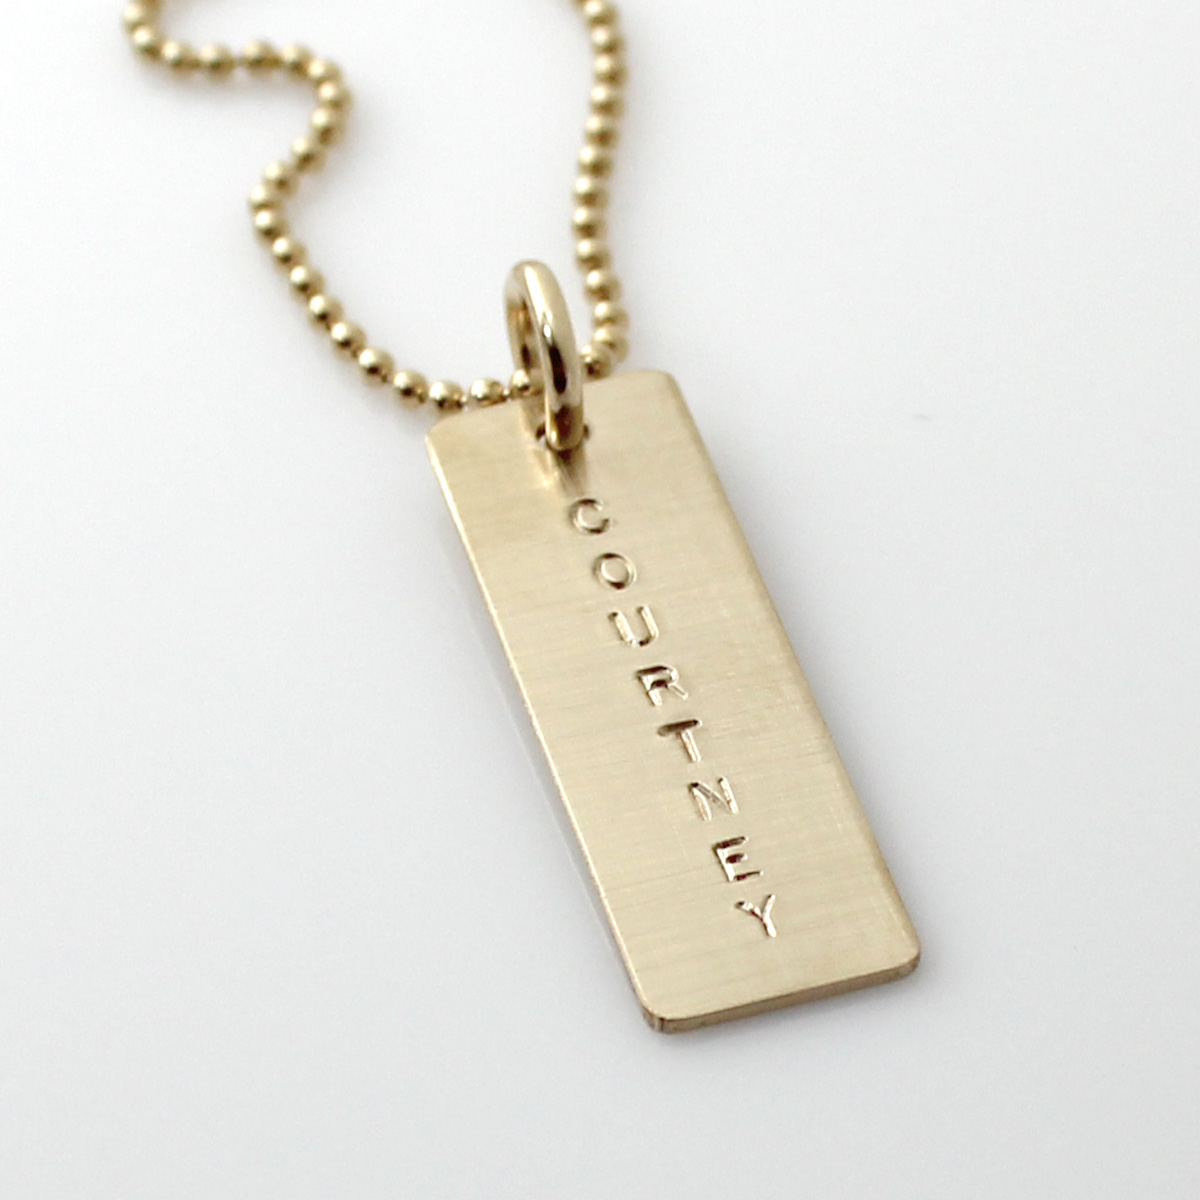 Simple Name Tag Necklace - Gold Filled Long Tag